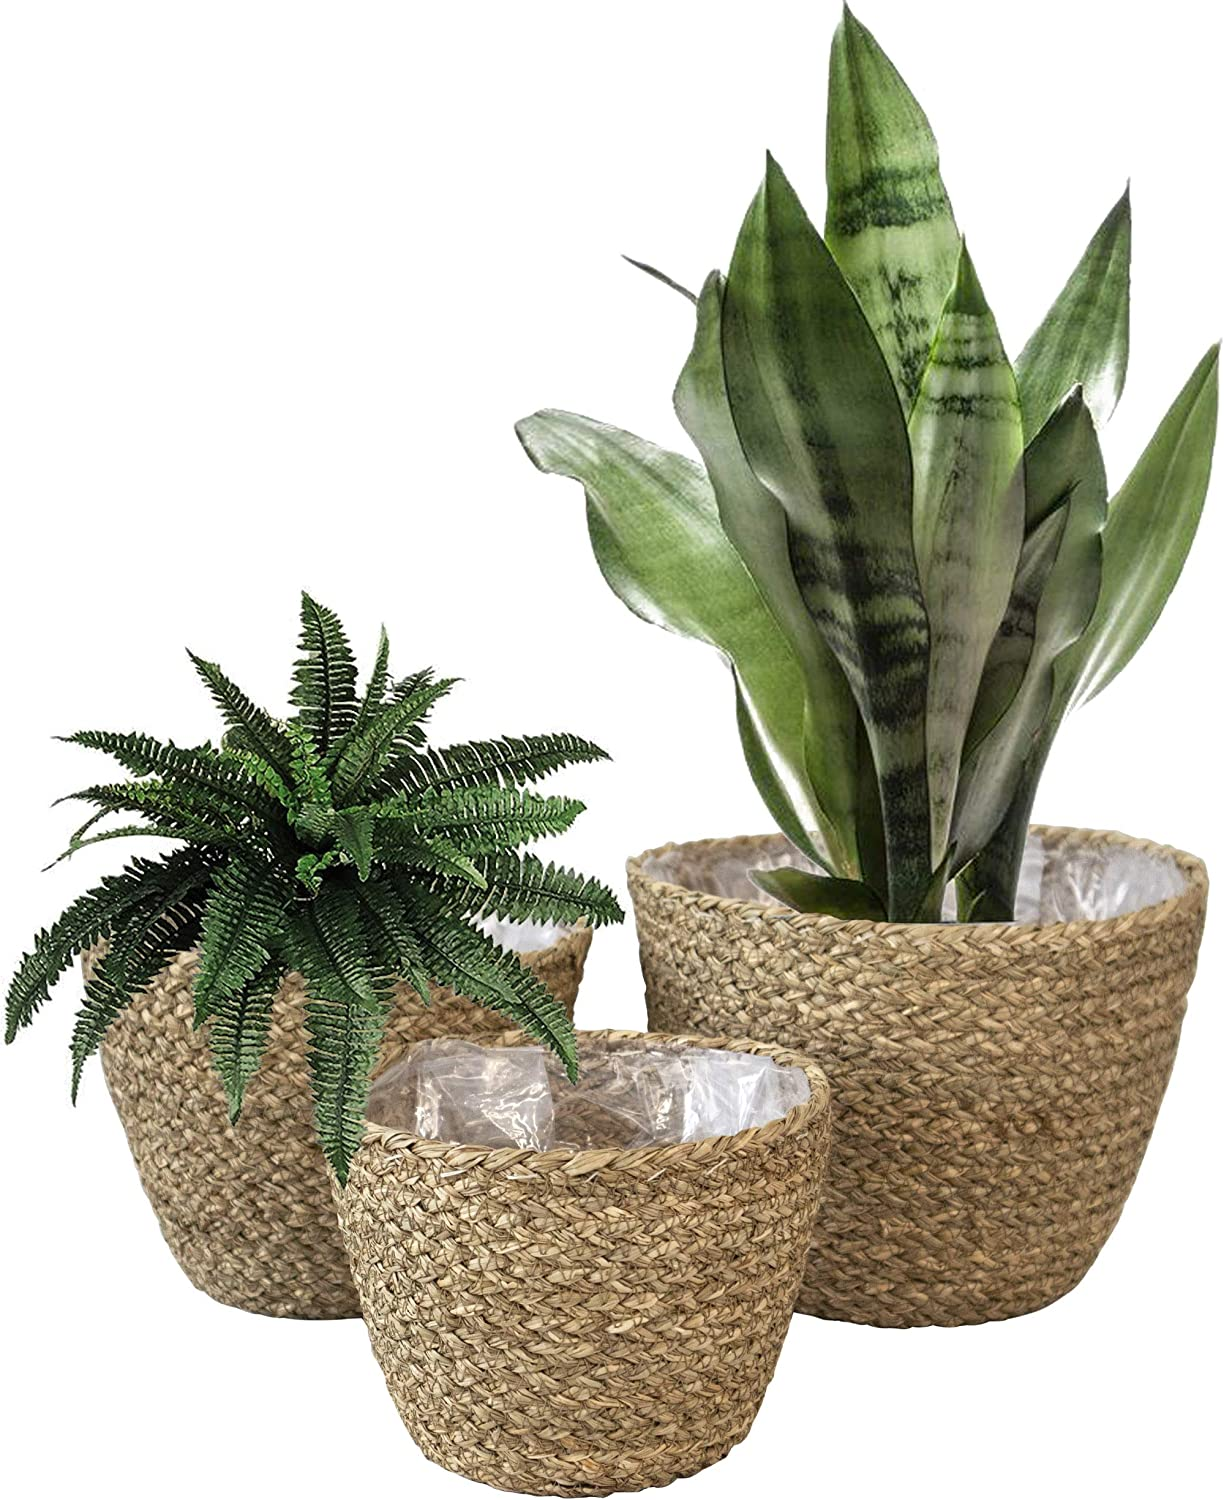 Made Terra Set 3 Woven Plant Pot Basket Indoor Planters, Natural Seagrass Willow Wicker Flower Planter Pot Container Basket for Home Garden Rustic Countryside Decor (Natural)